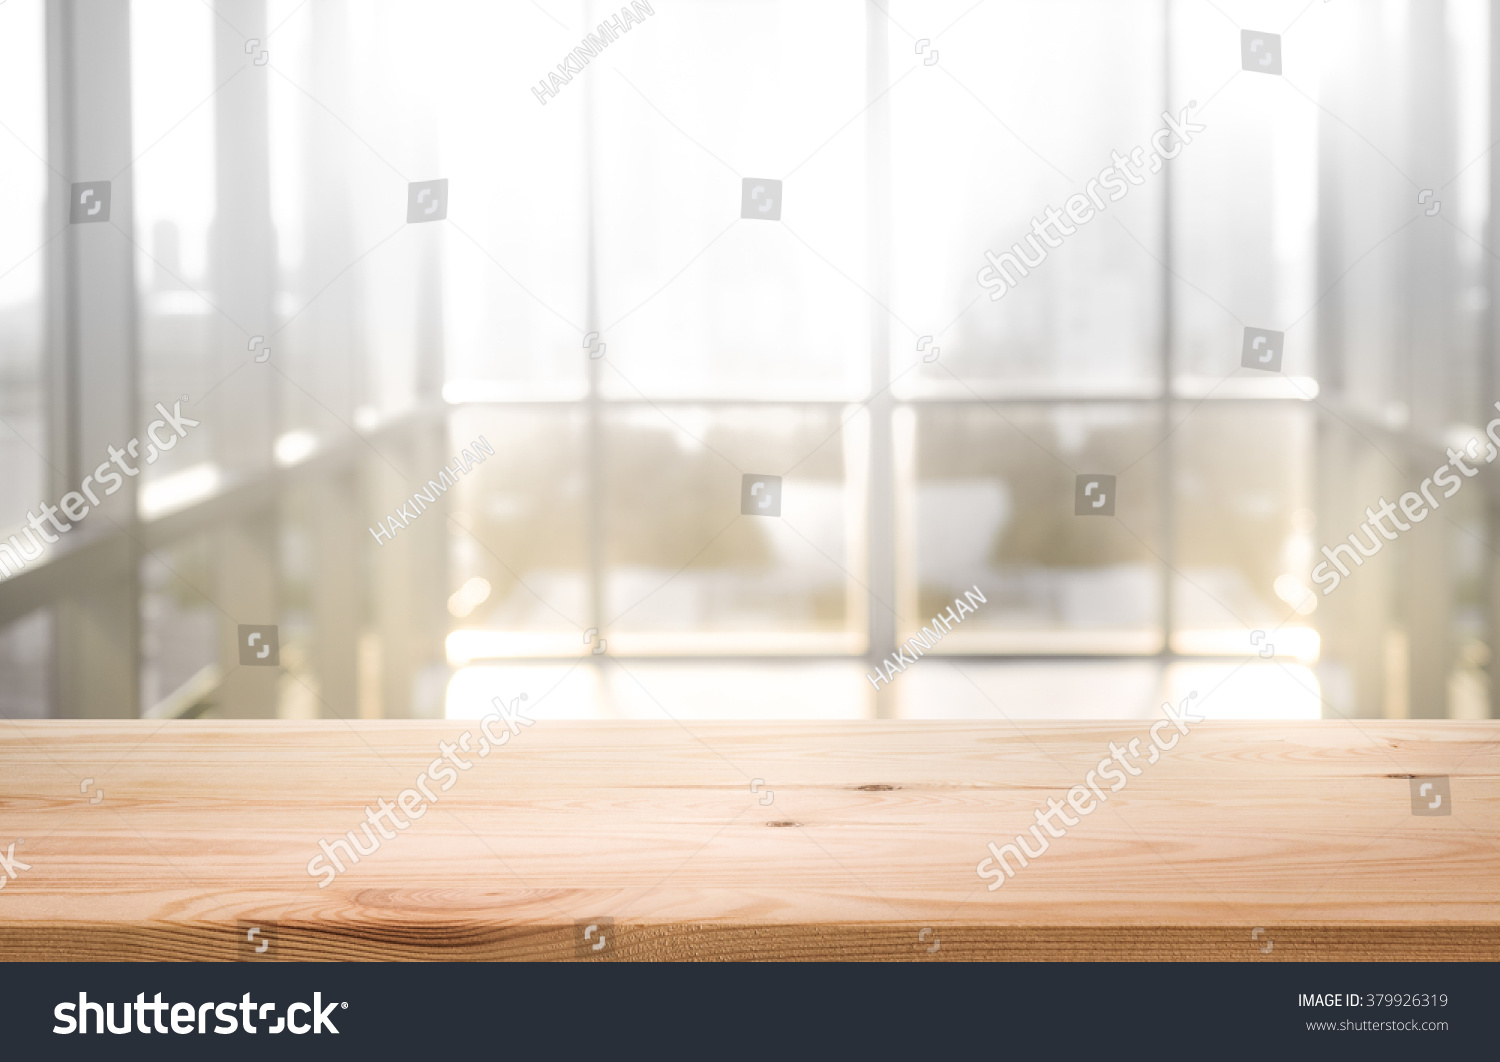 Empty wood table and blurred living room background stock photo - Empty The Top Of Wood Table With Blur Sunlight In Window Building Background For